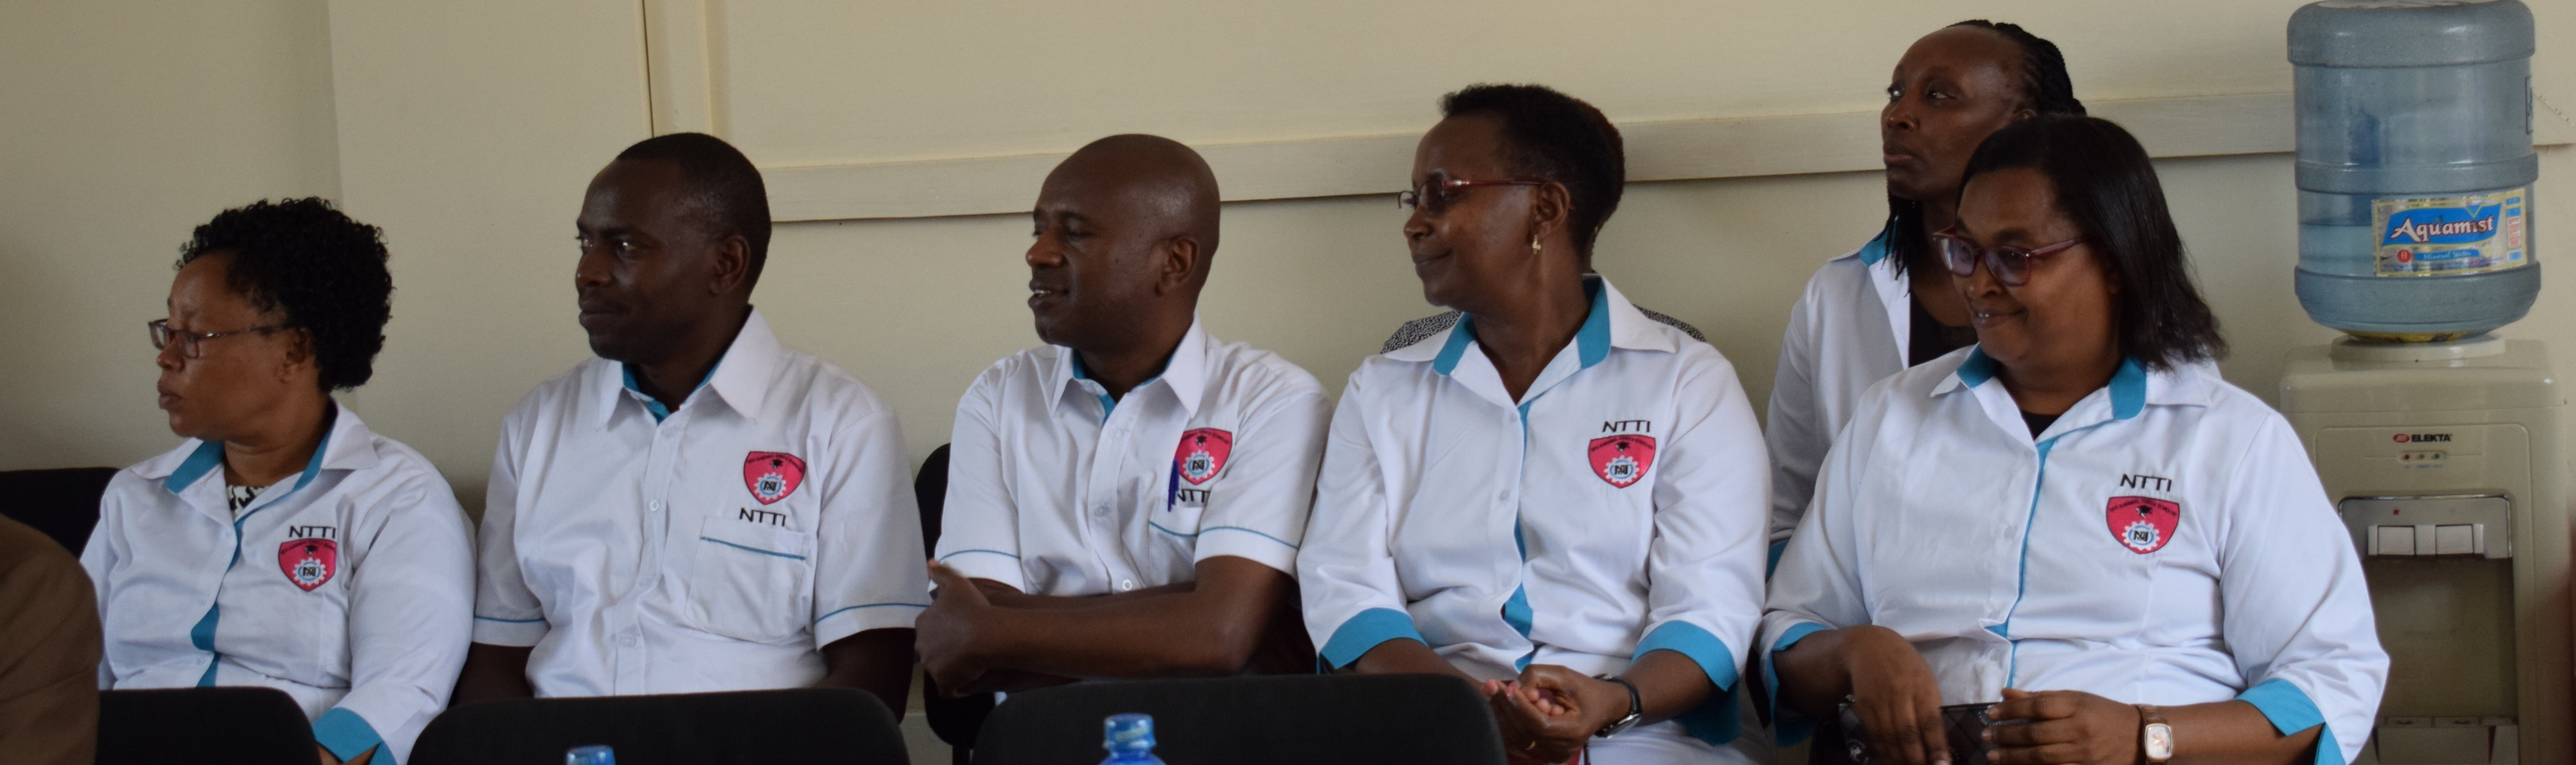 NTTI HEADS OF DEPARTMENTS